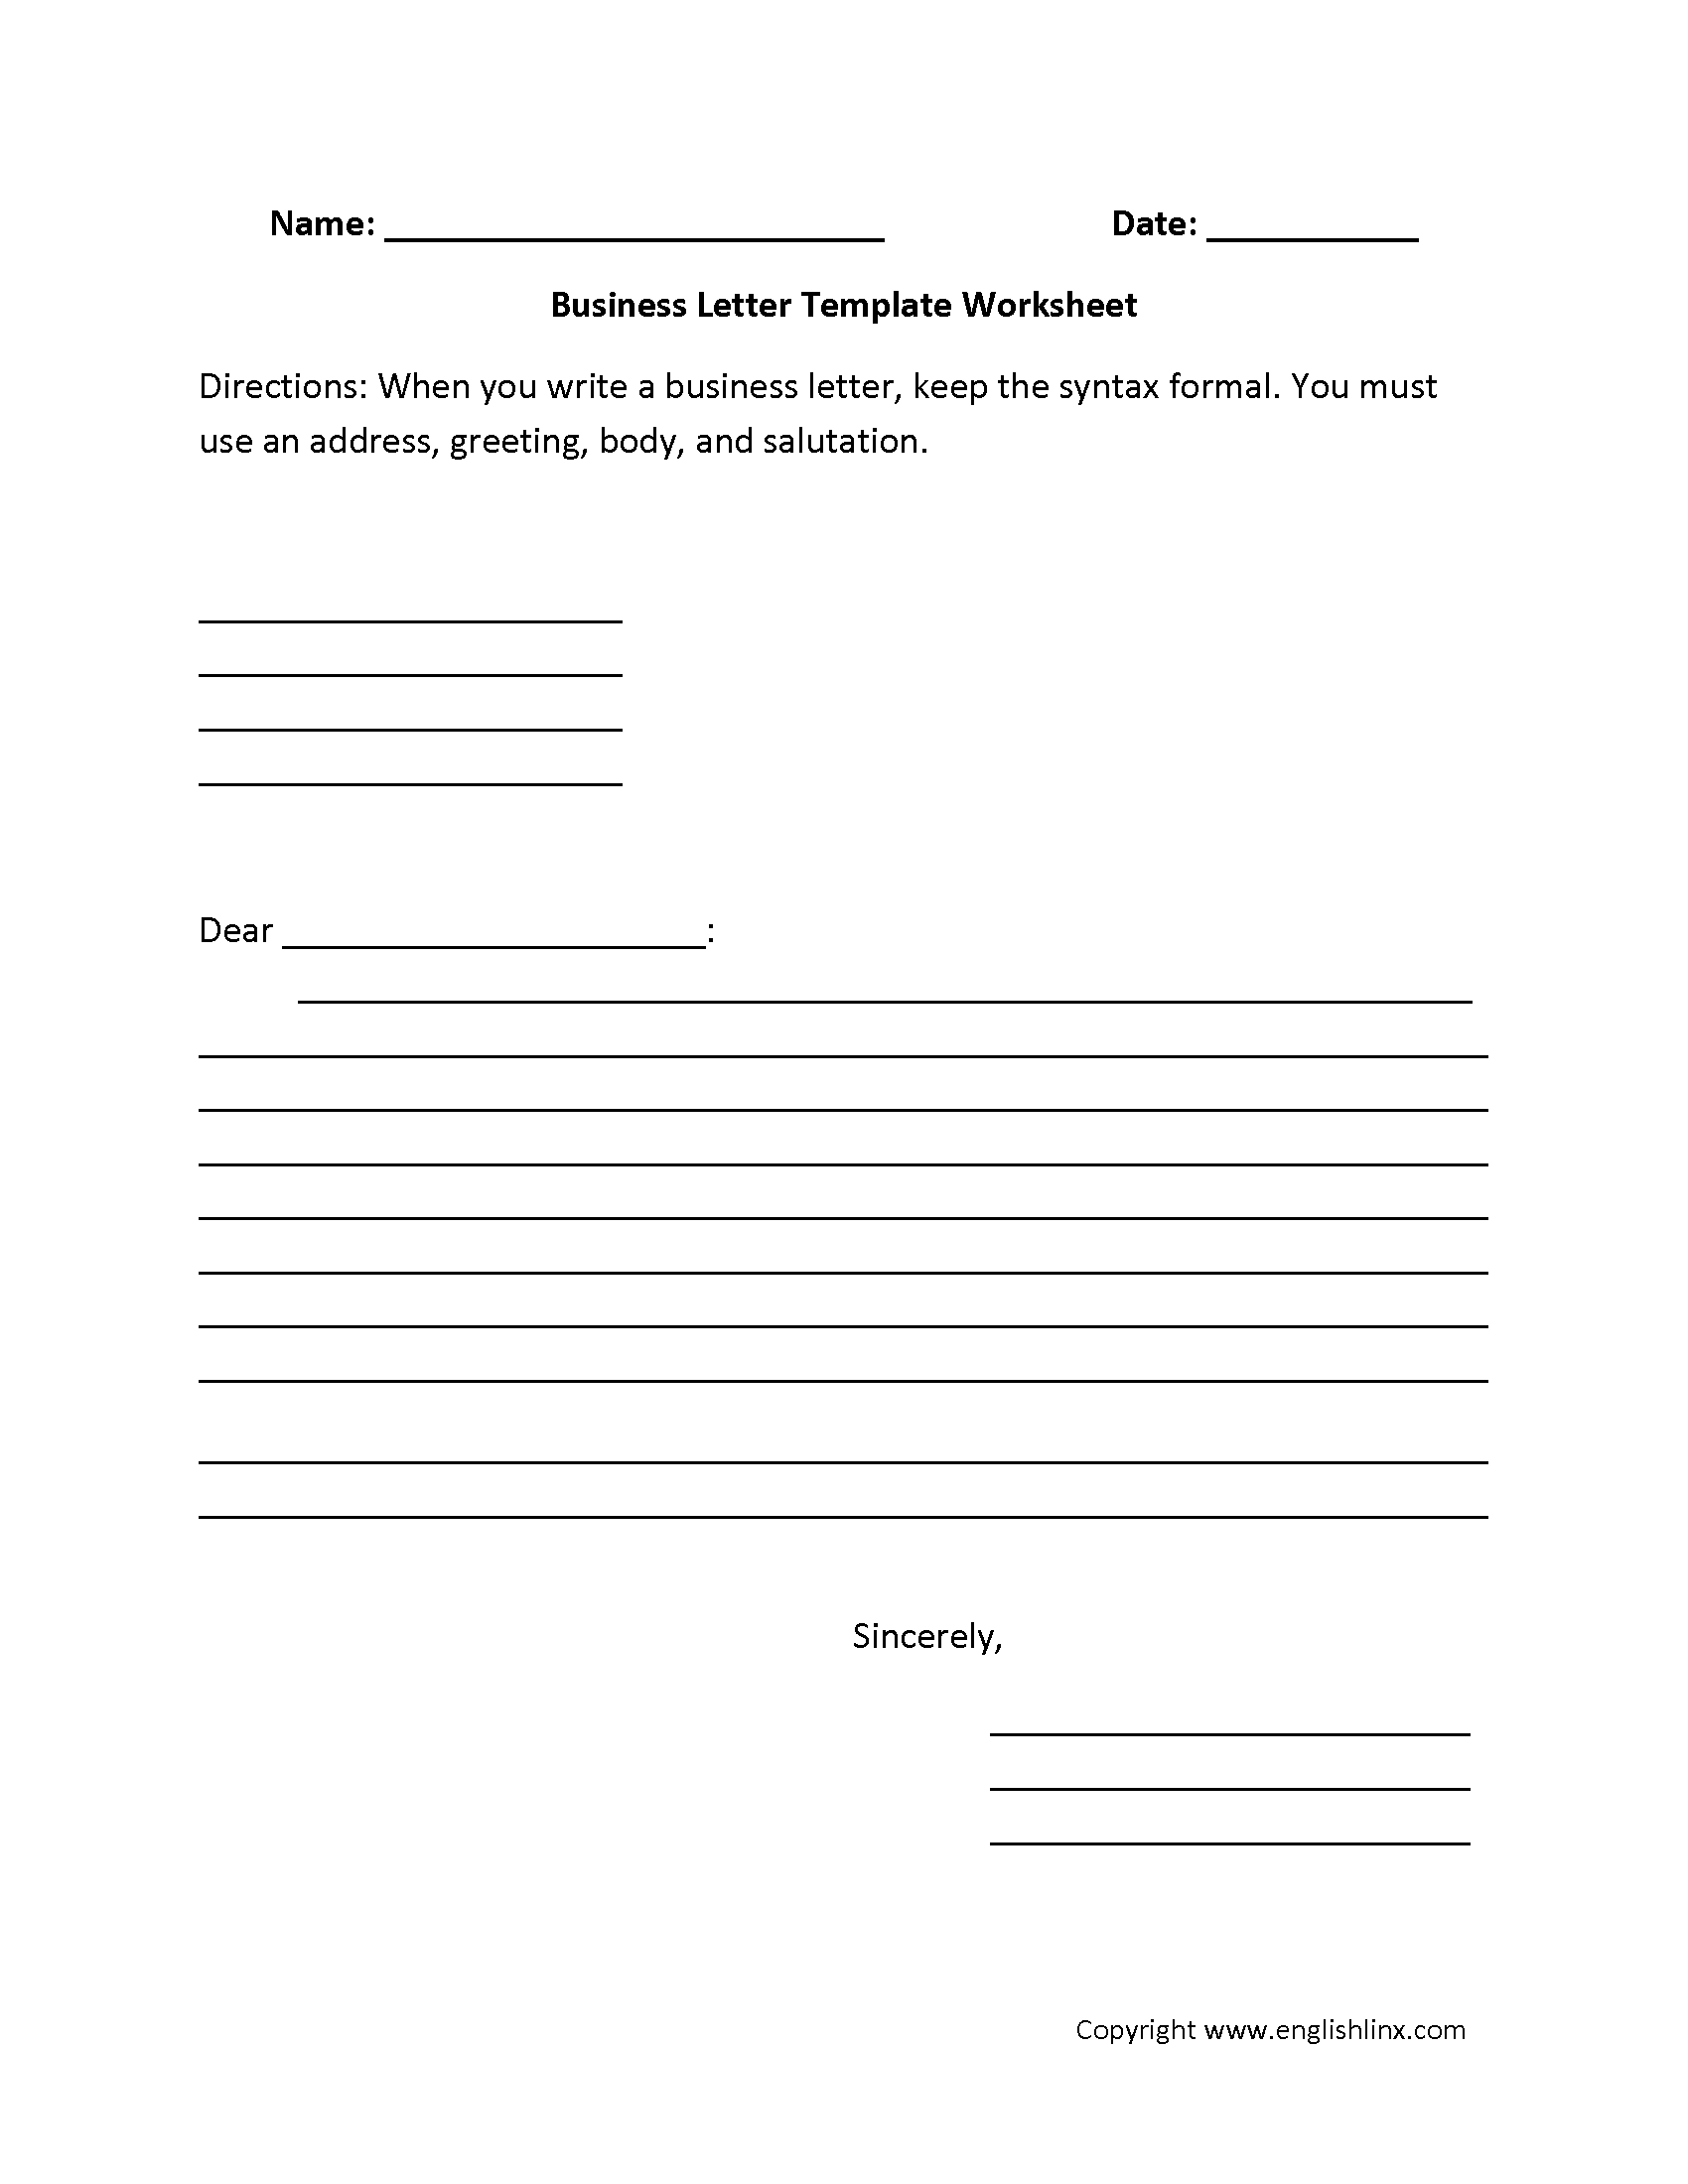 Worksheets Parts Of A Letter Worksheet writing worksheets letter business worksheets